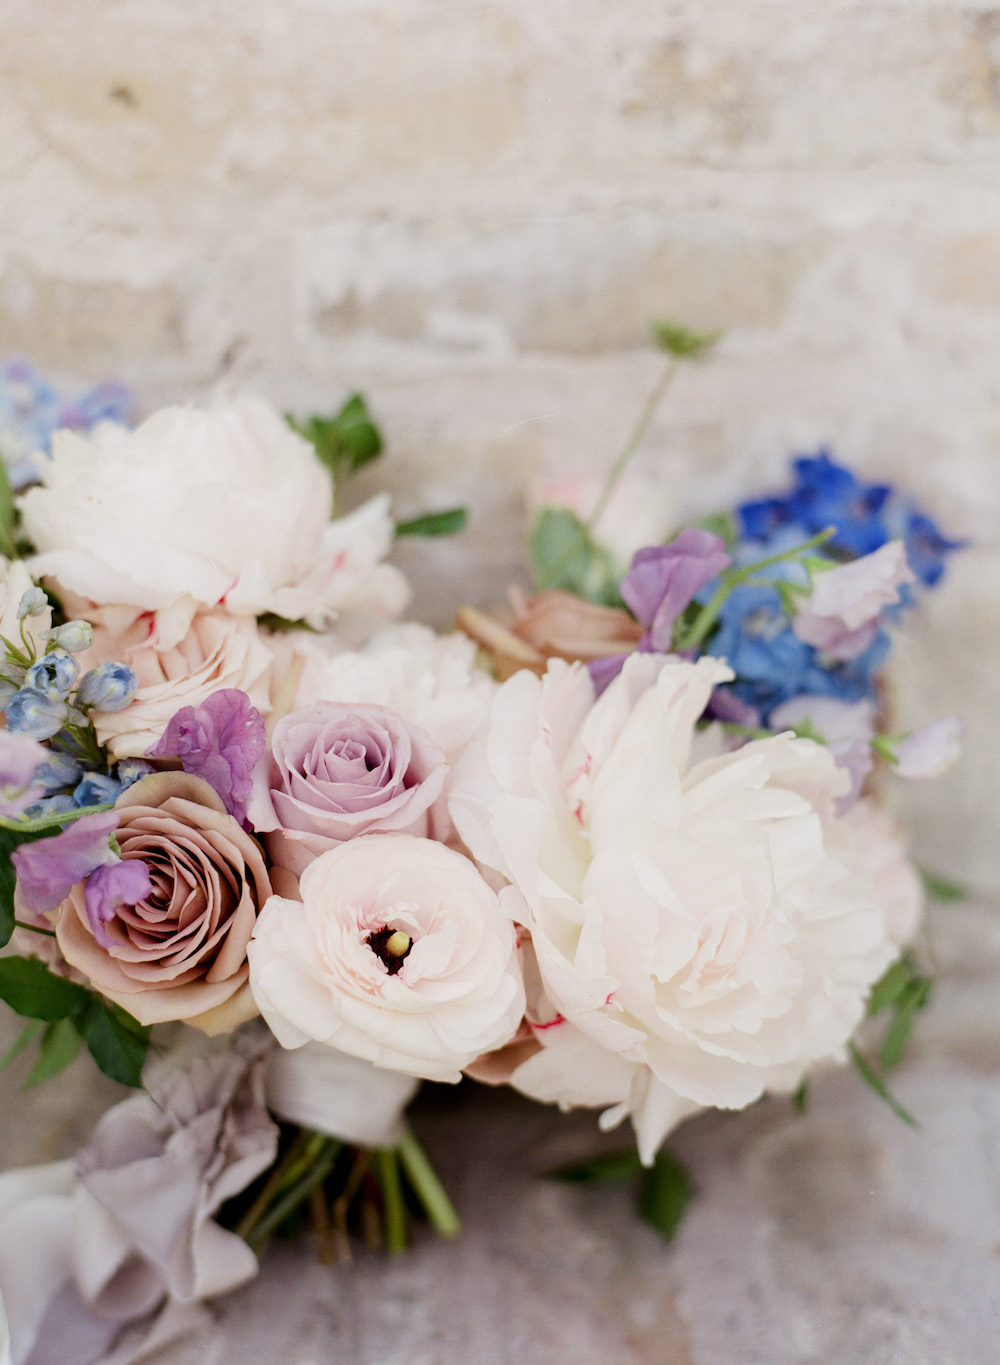 Naturally Elegant Wedding Flowers - Stone House Creative